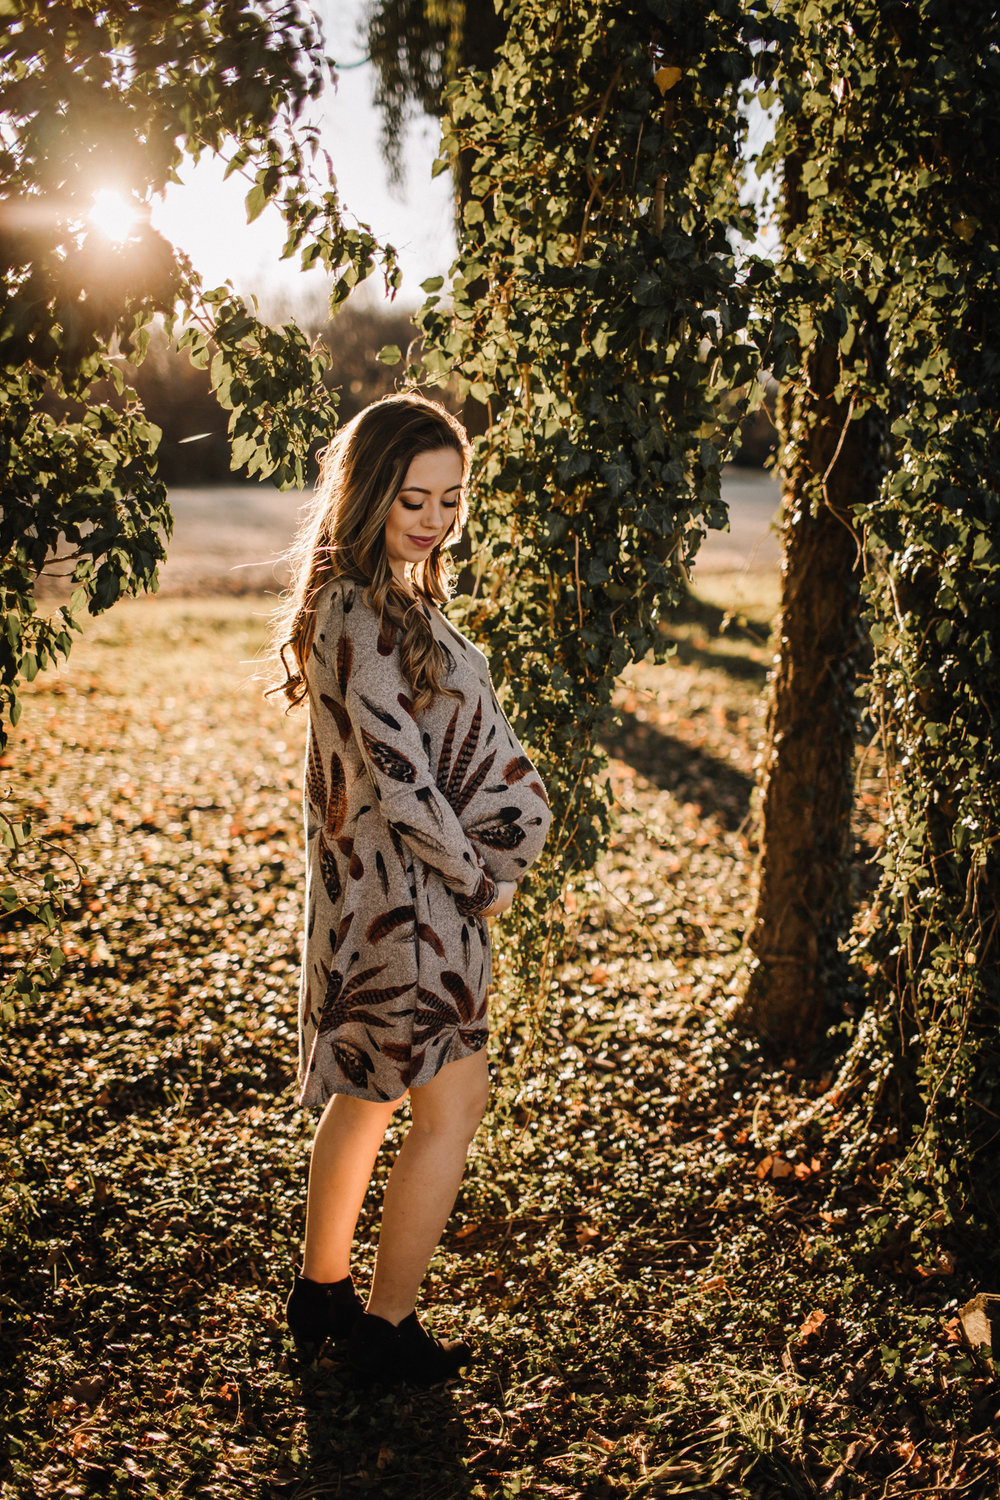 billie-shaye-style-photography-www.billieshayestyle.com-fall-farm-maternity-session-nashville-tennessee-9322.jpg